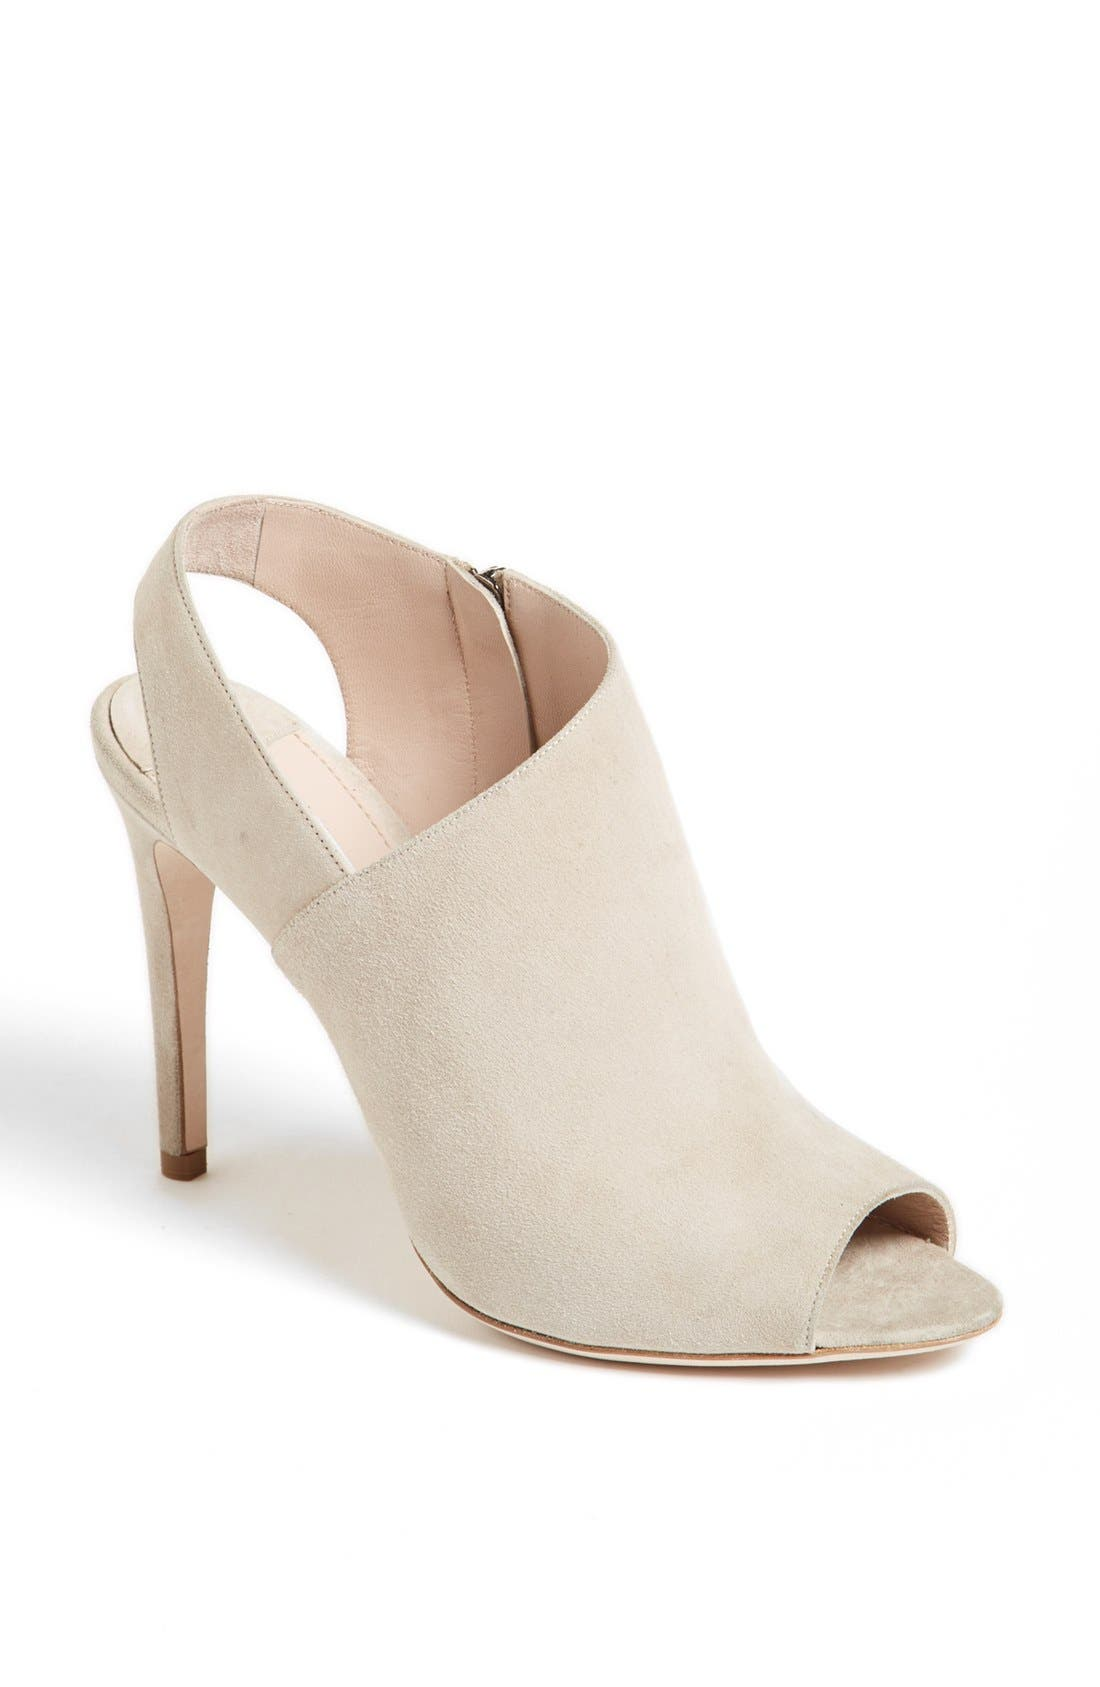 Alternate Image 1 Selected - Miu Miu Peep Toe Slingback Bootie